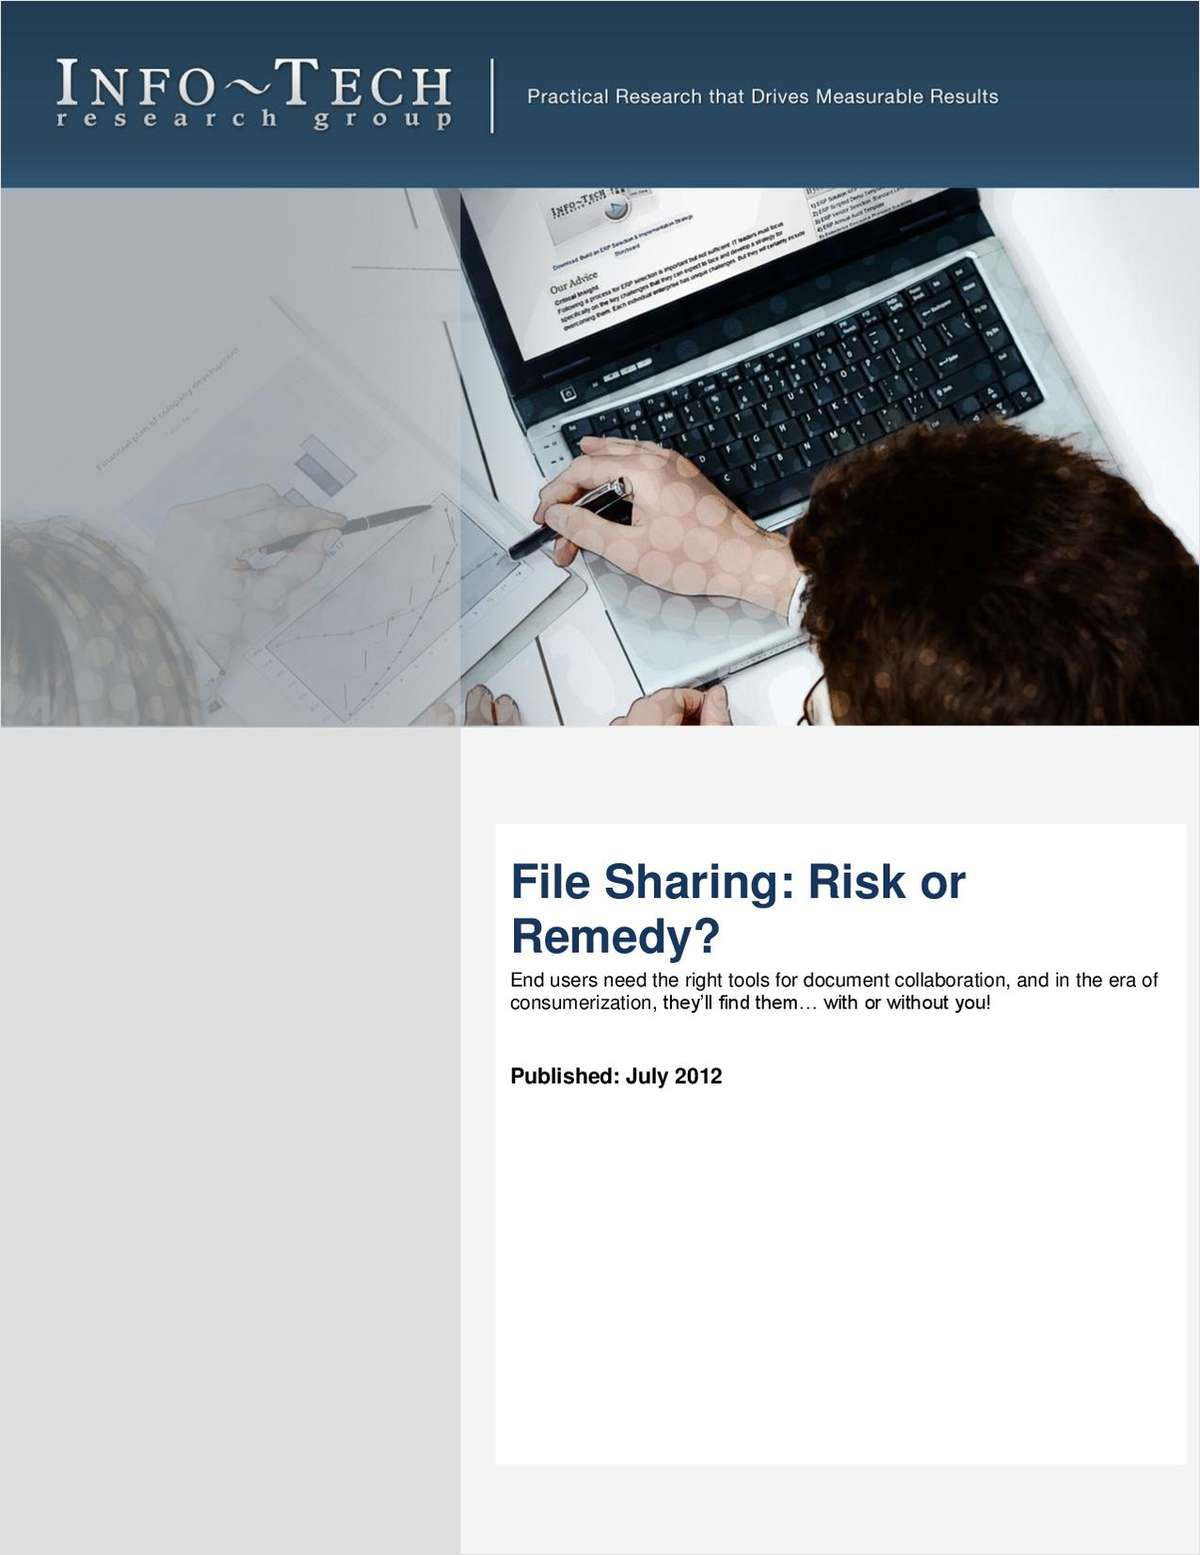 File Sharing: Risk or Remedy?